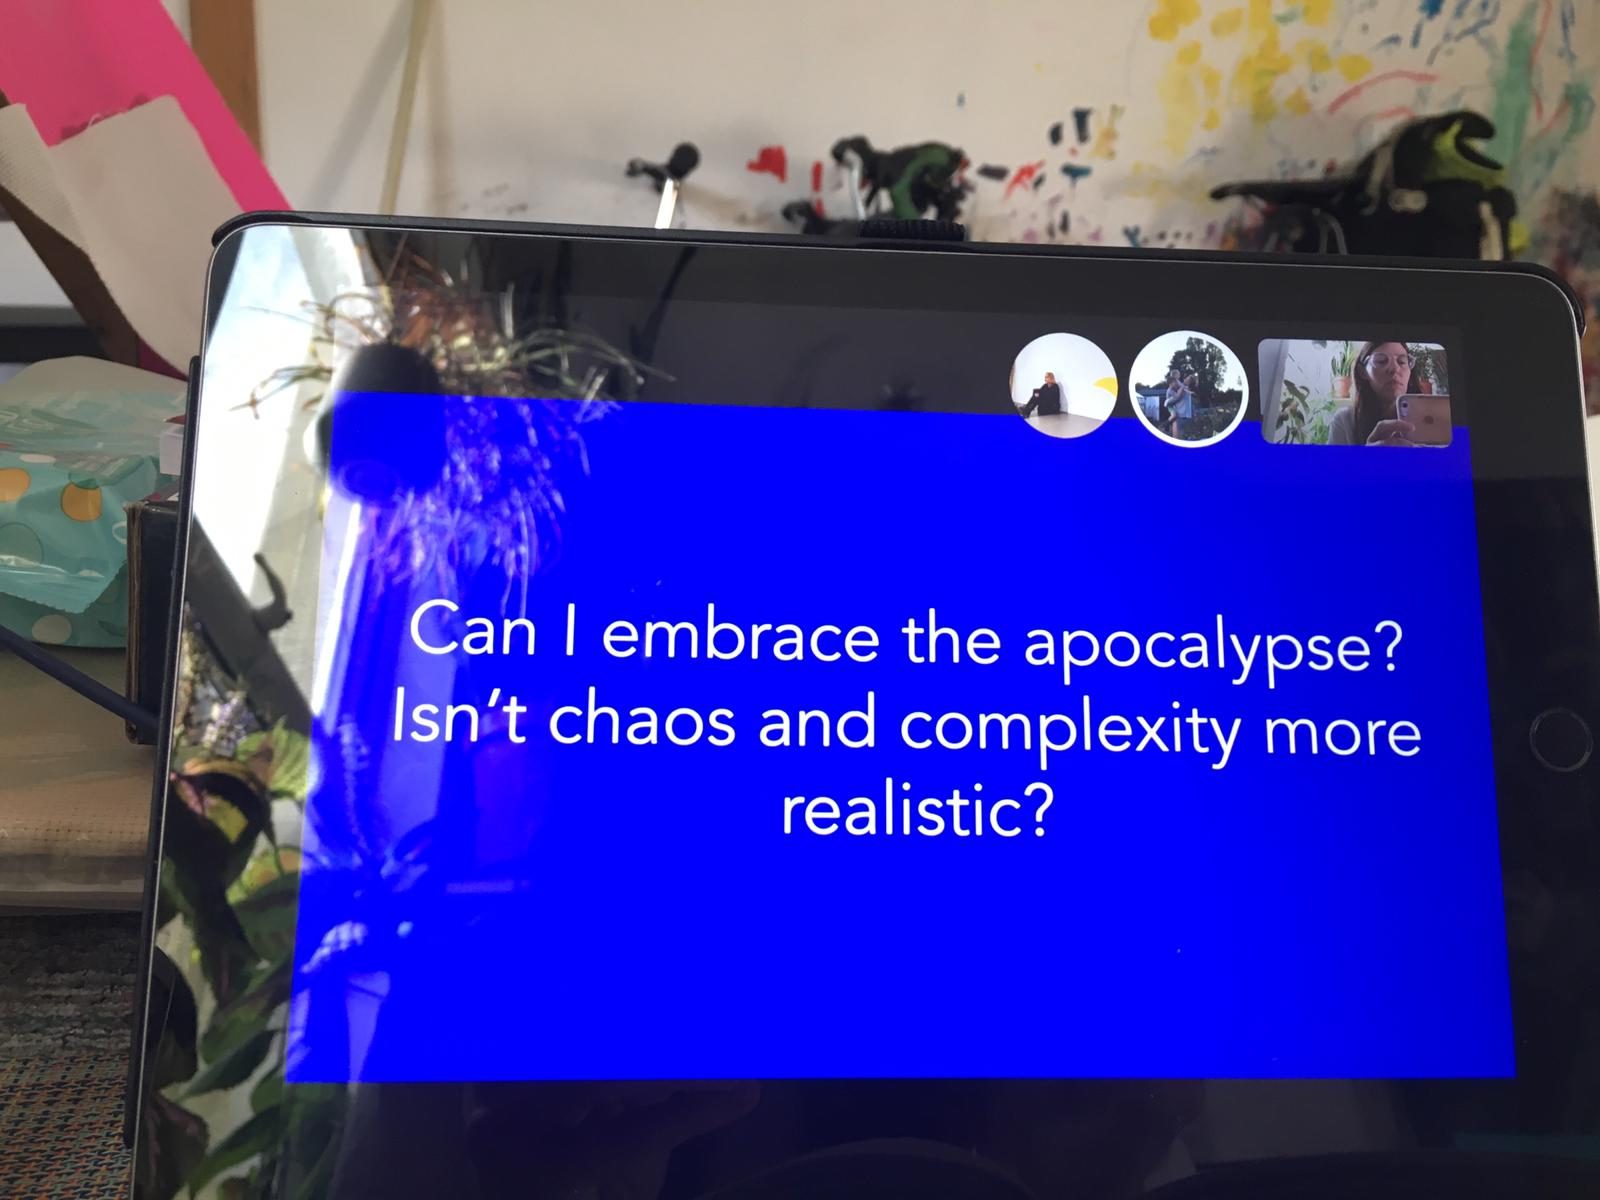 """Photo of a lap top during the Skype call, the screen is blue and written in white text is the questions: """"Can I embrace the apocalypse? Isn't chaoos and complexity more realistic?"""